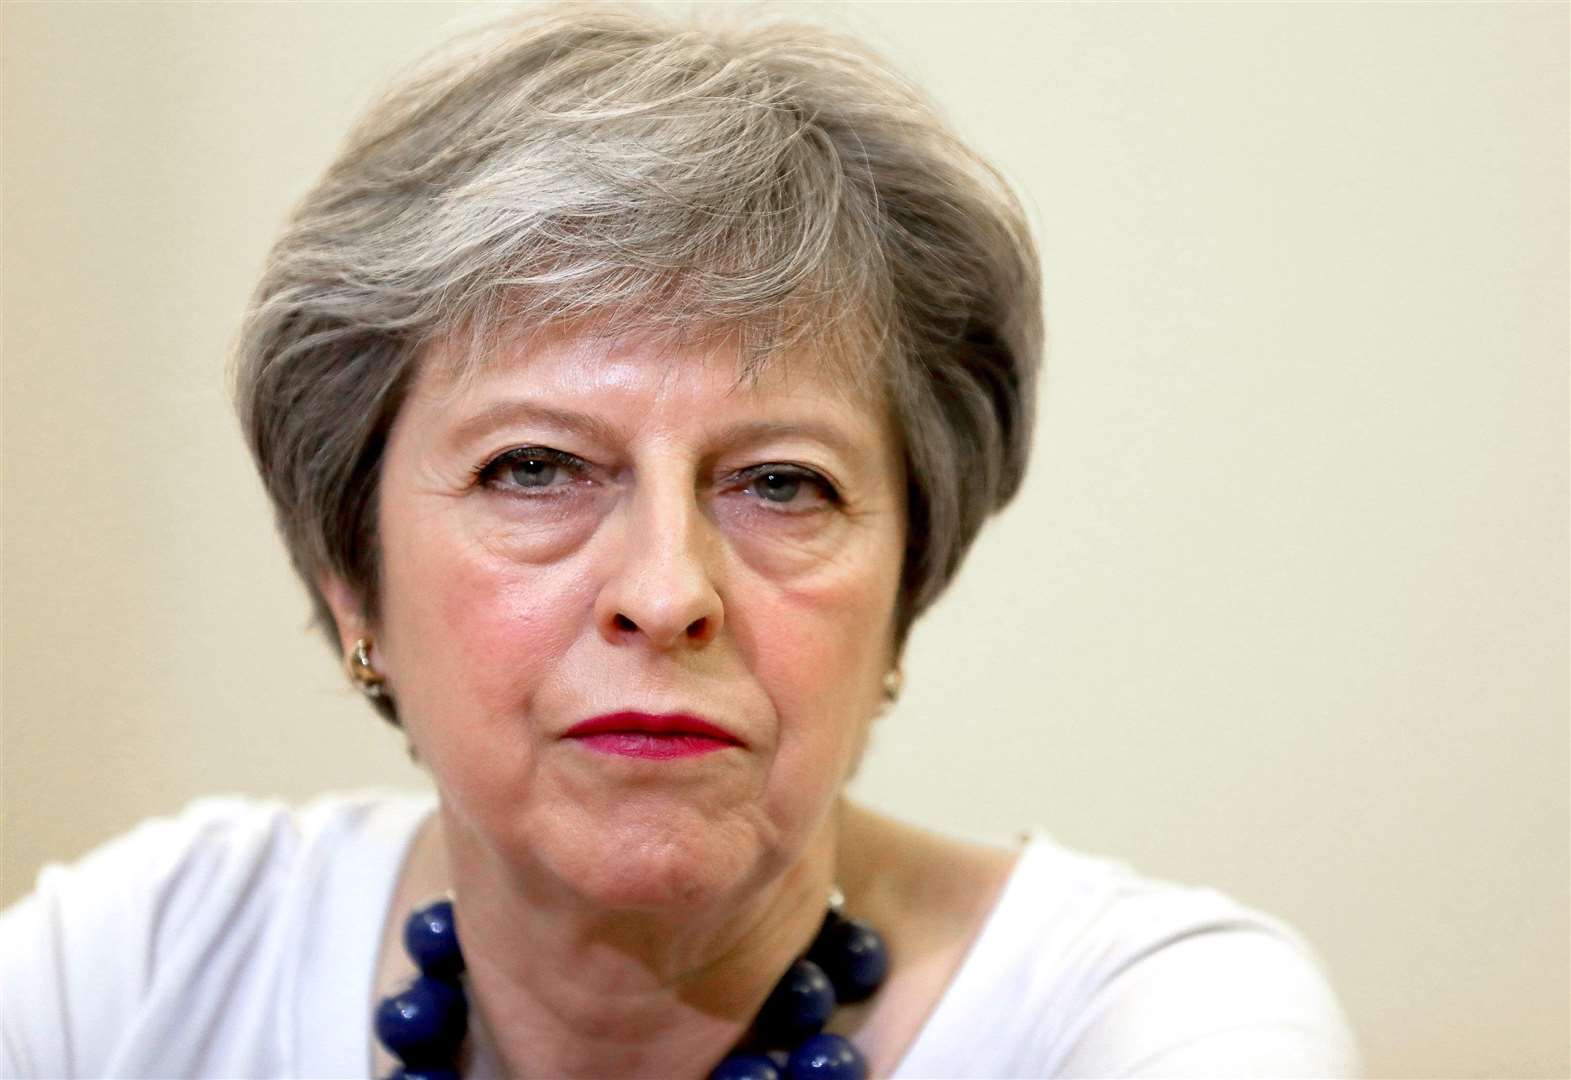 Blog: PM survives no confidence vote